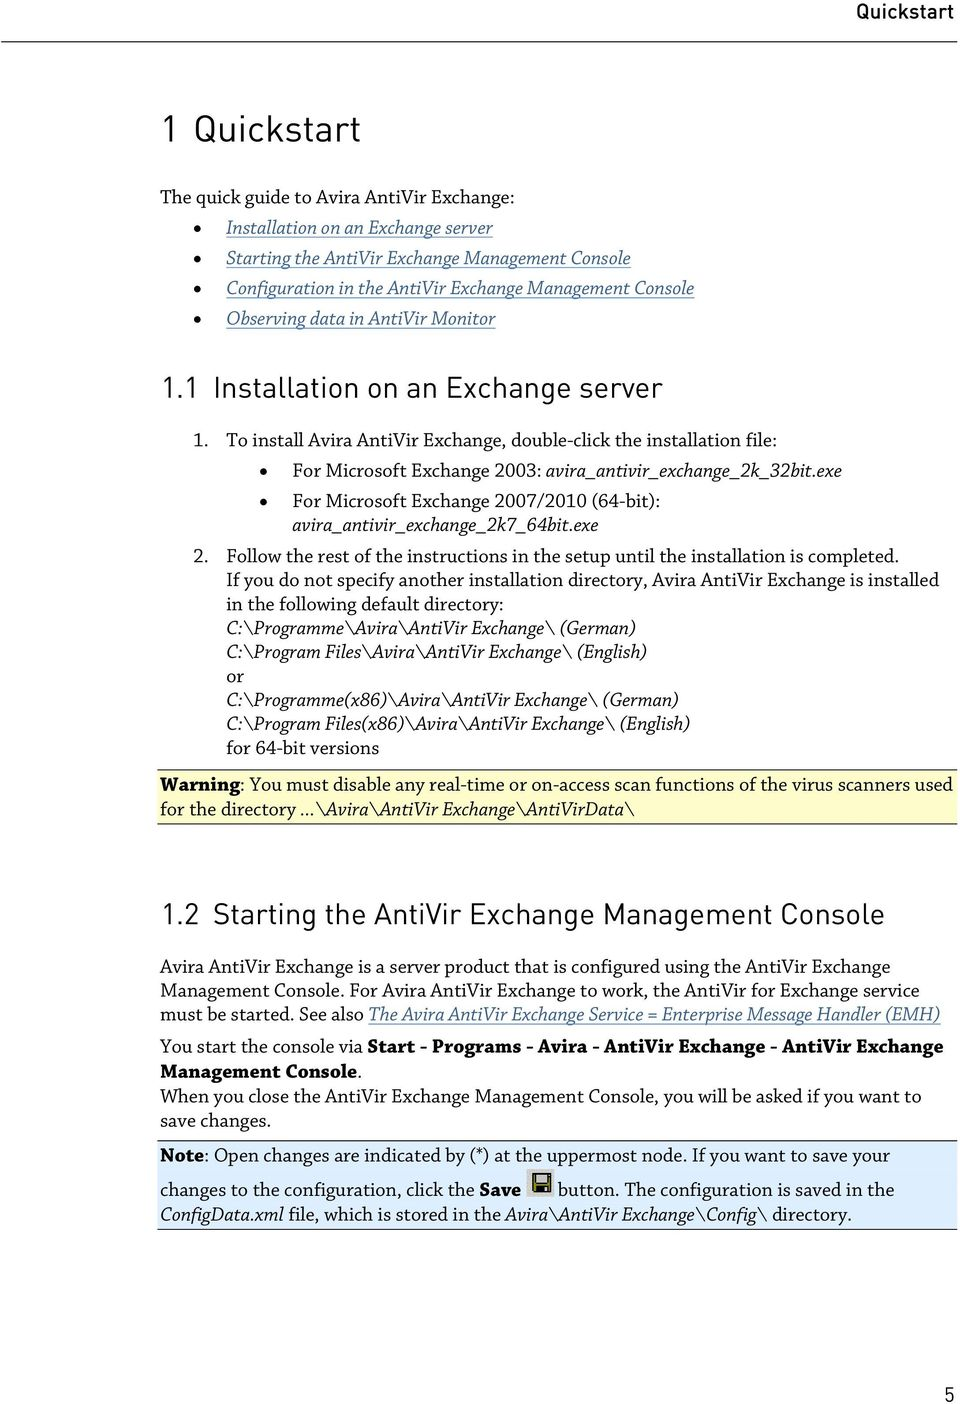 To install Avira AntiVir Exchange, double-click the installation file: For Microsoft Exchange 2003: avira_antivir_exchange_2k_32bit.